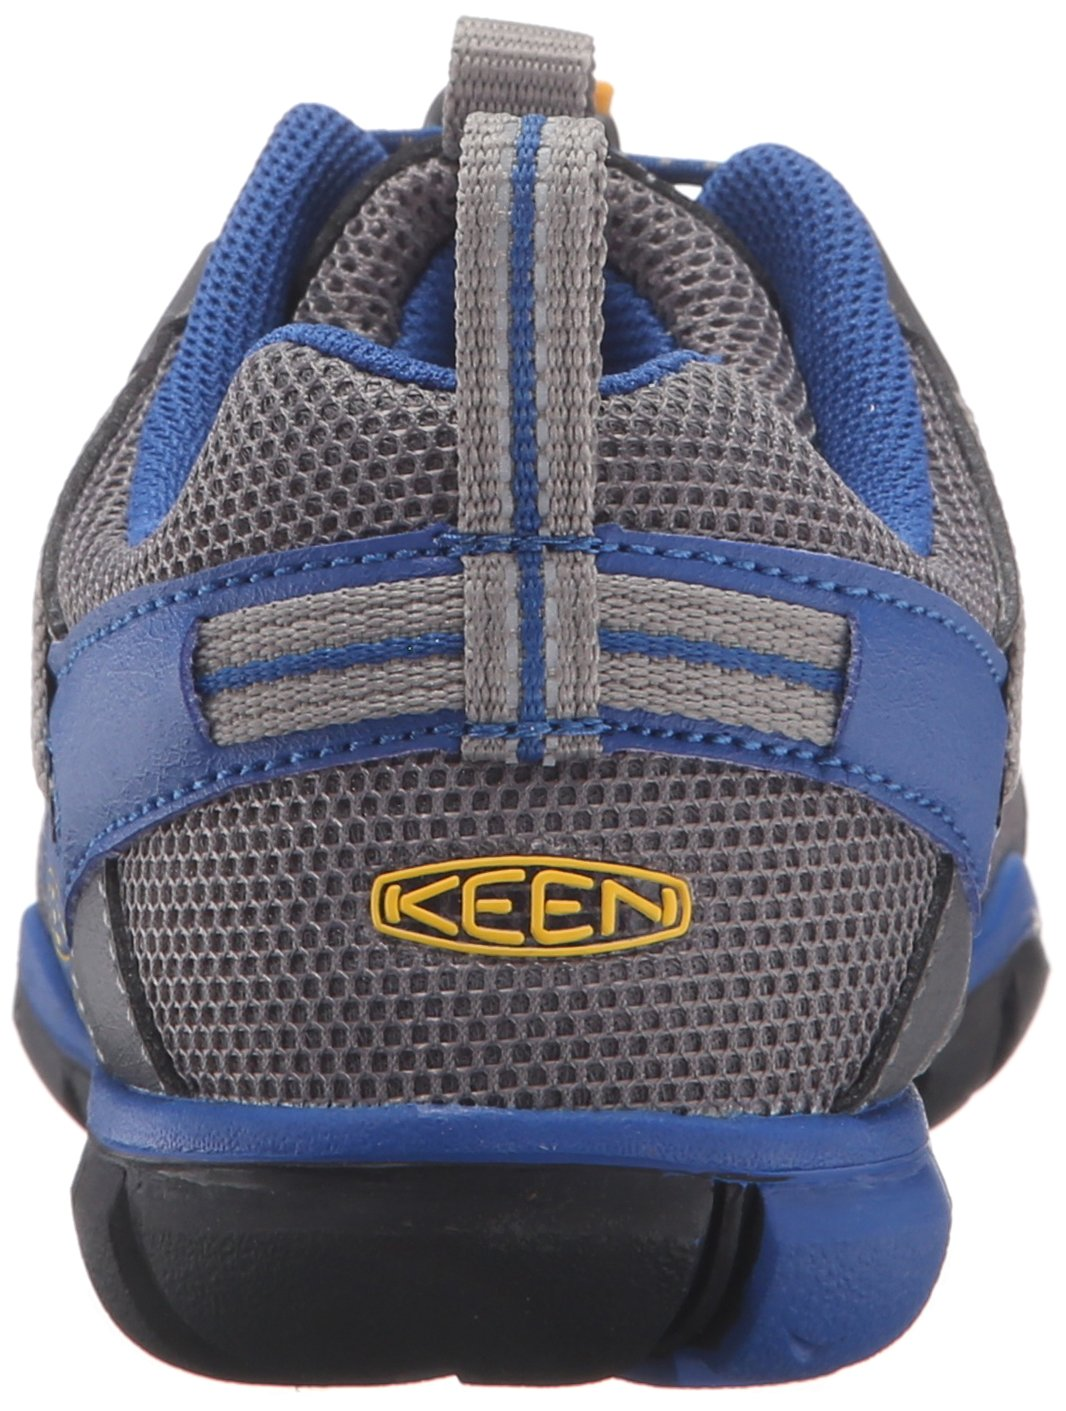 KEEN Chandler CNX US Shoe B01921GDX0 11 Toddler US CNX Toddler|Gargoyle/True Blue 85d972